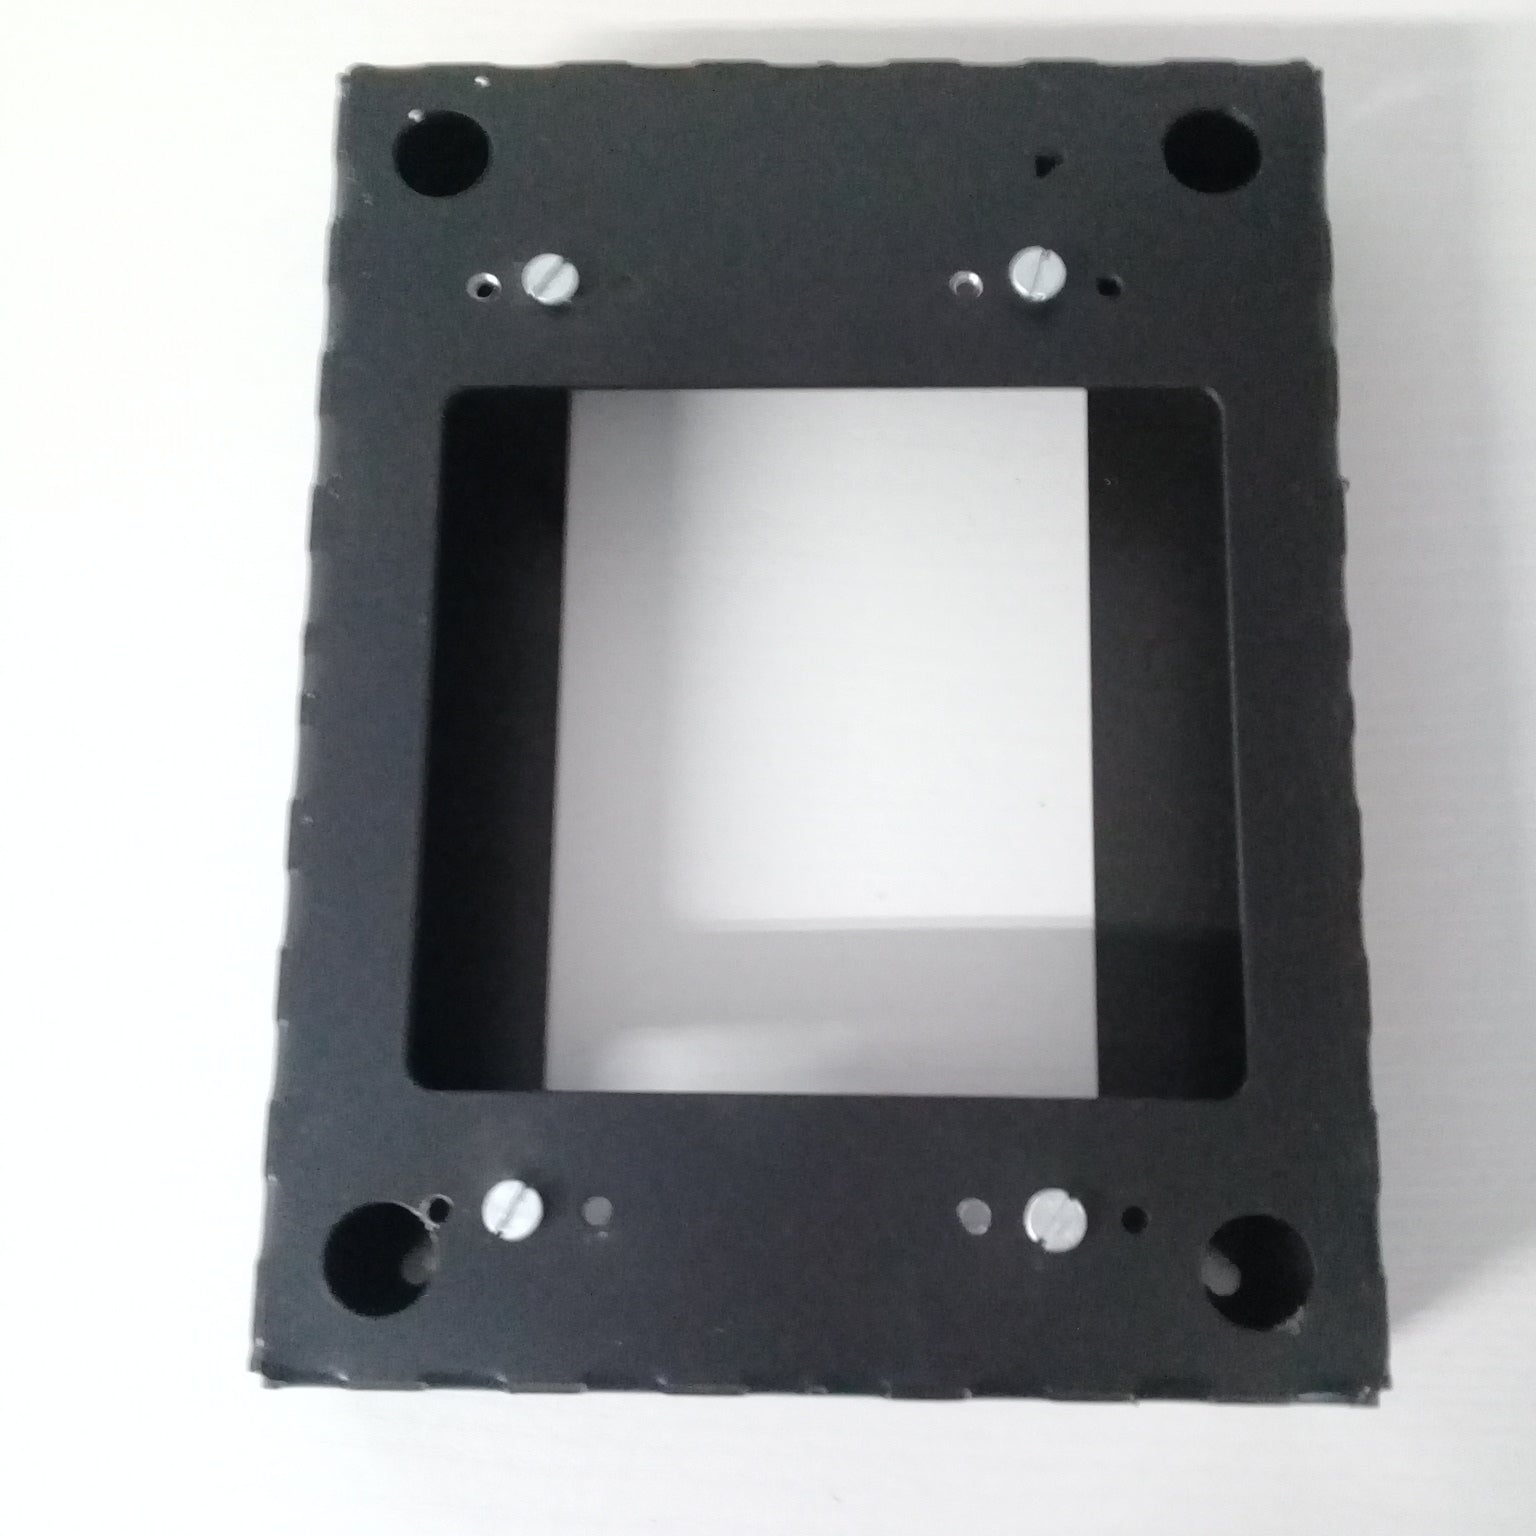 Spacer Box for S900